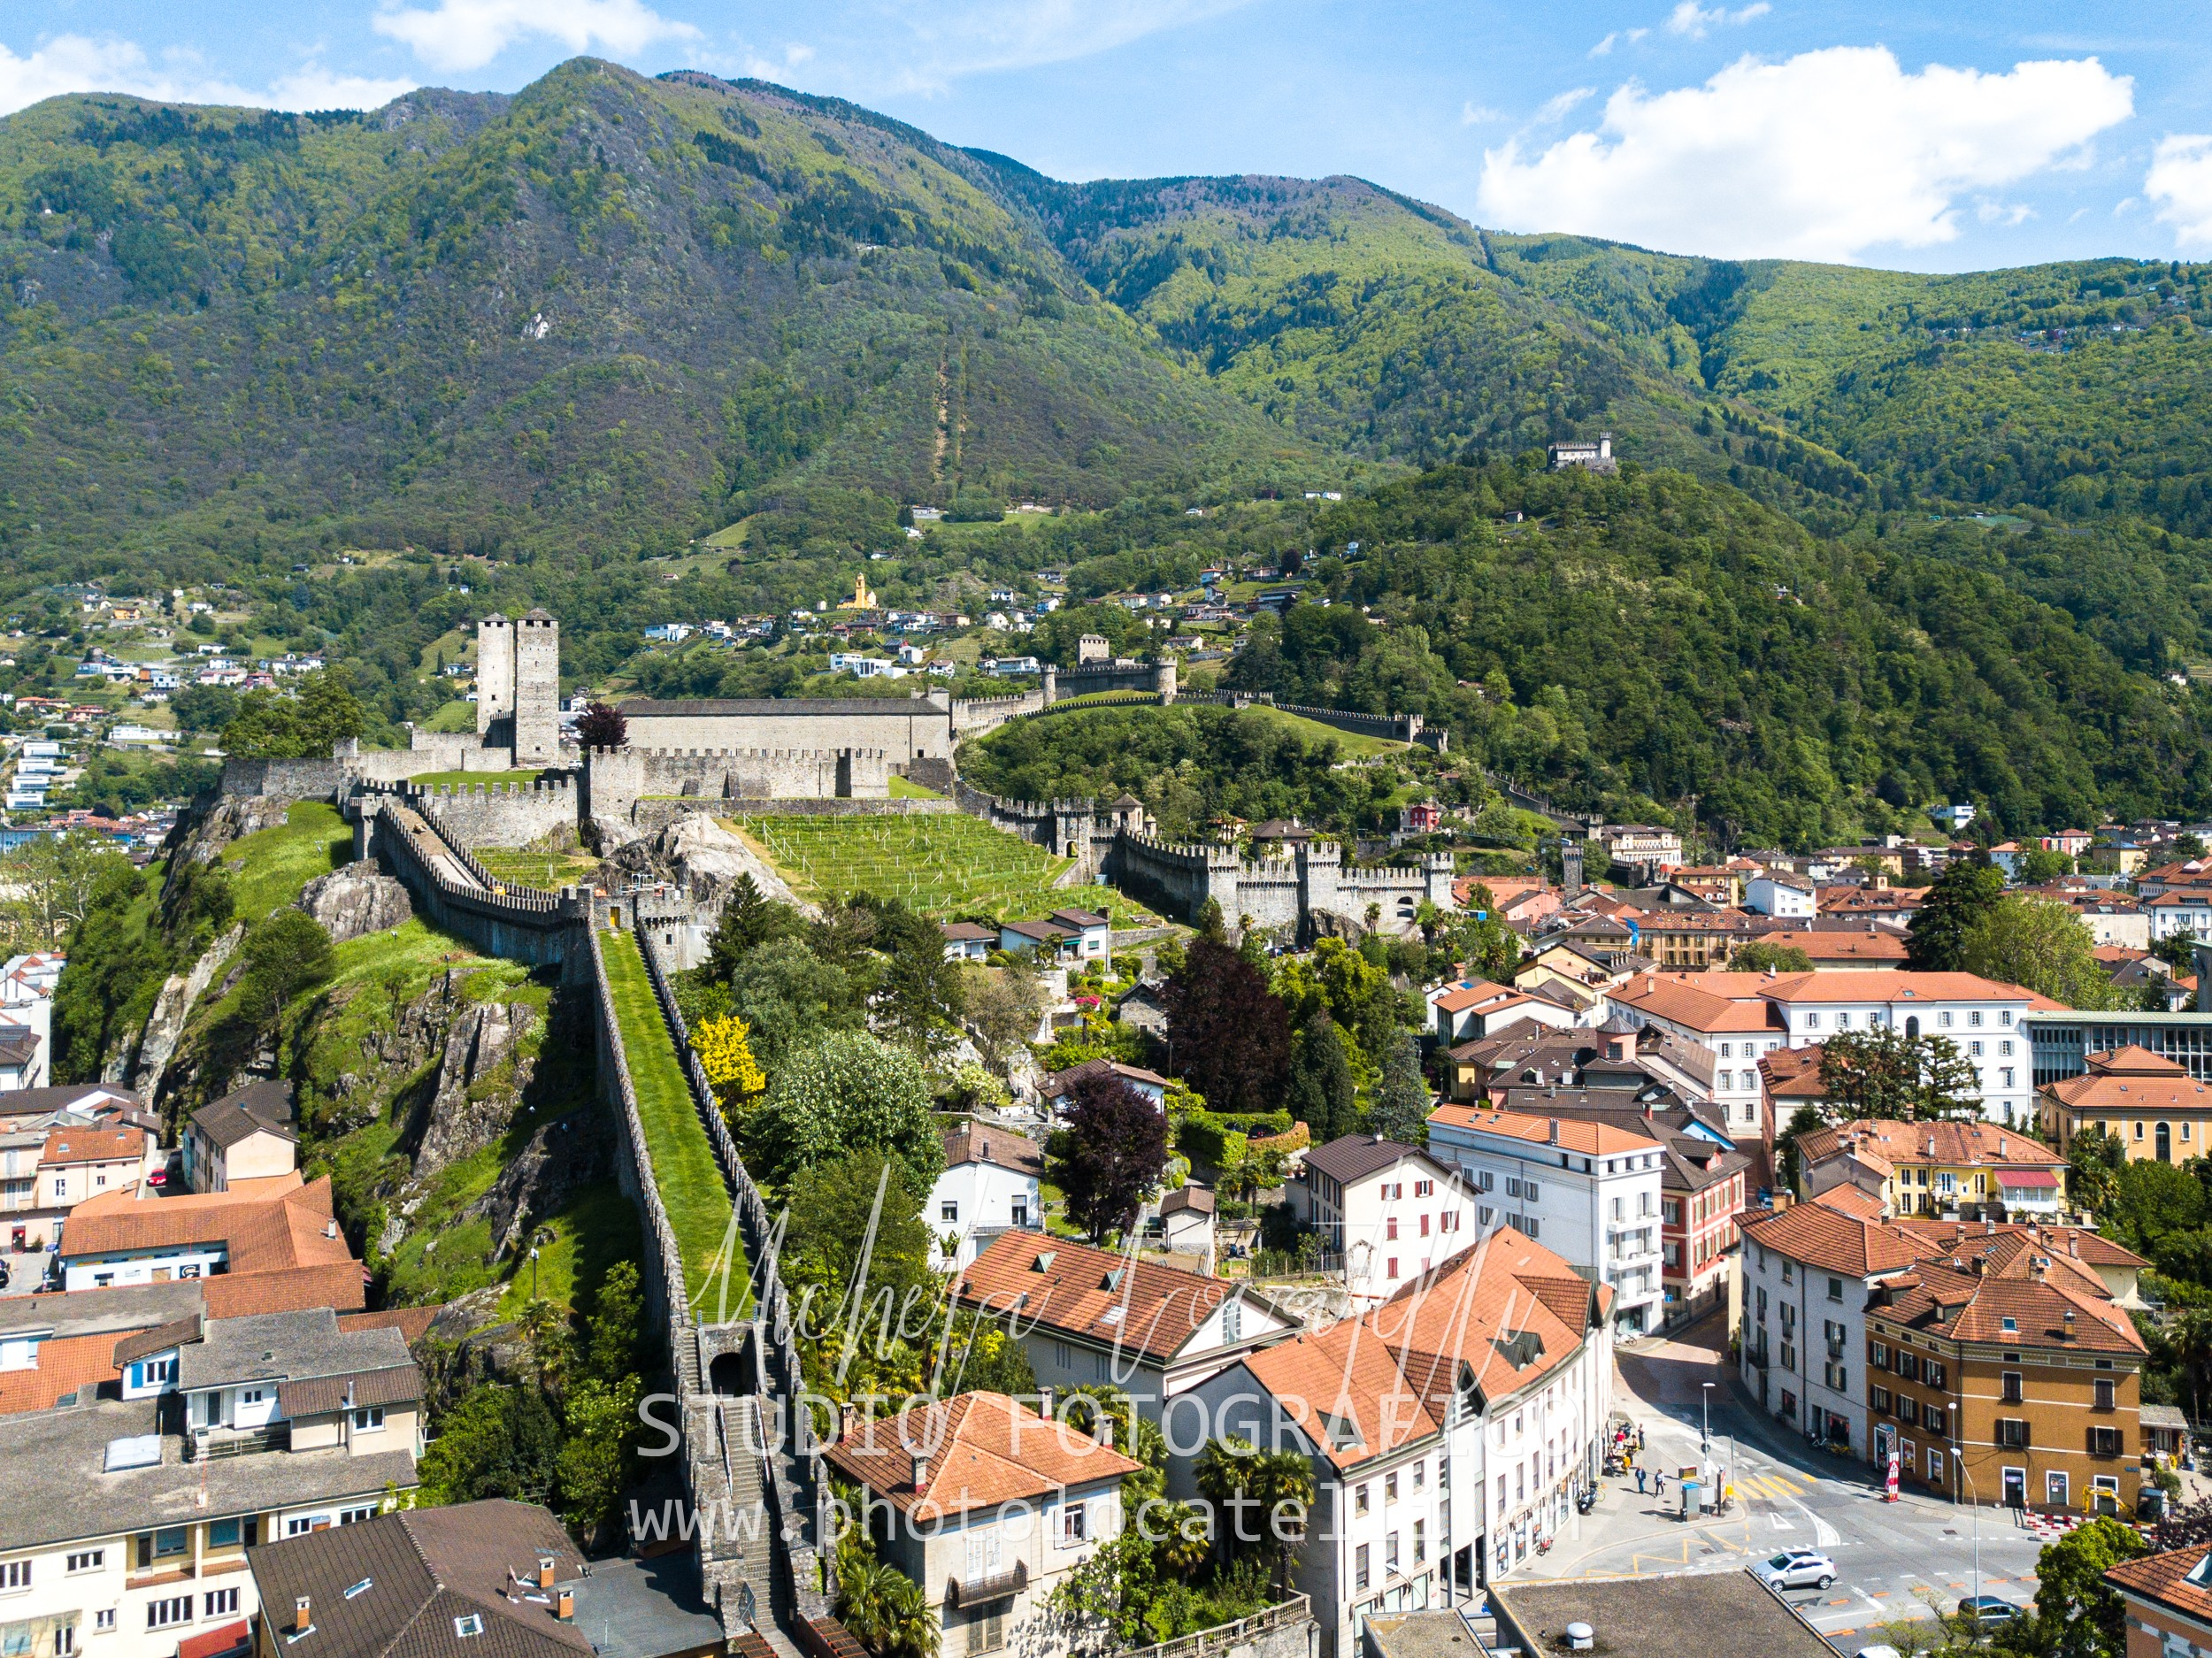 Bellinzona 2019,Bellinzona,Bellinzonese,Landscape,Places,Schweiz,Switzerland,città,city,drone,michela@photolocatelli.ch,paesaggio,palazzo civico,photolocatelli.ch,svizzera,swiss,ticino,ticino turismo,